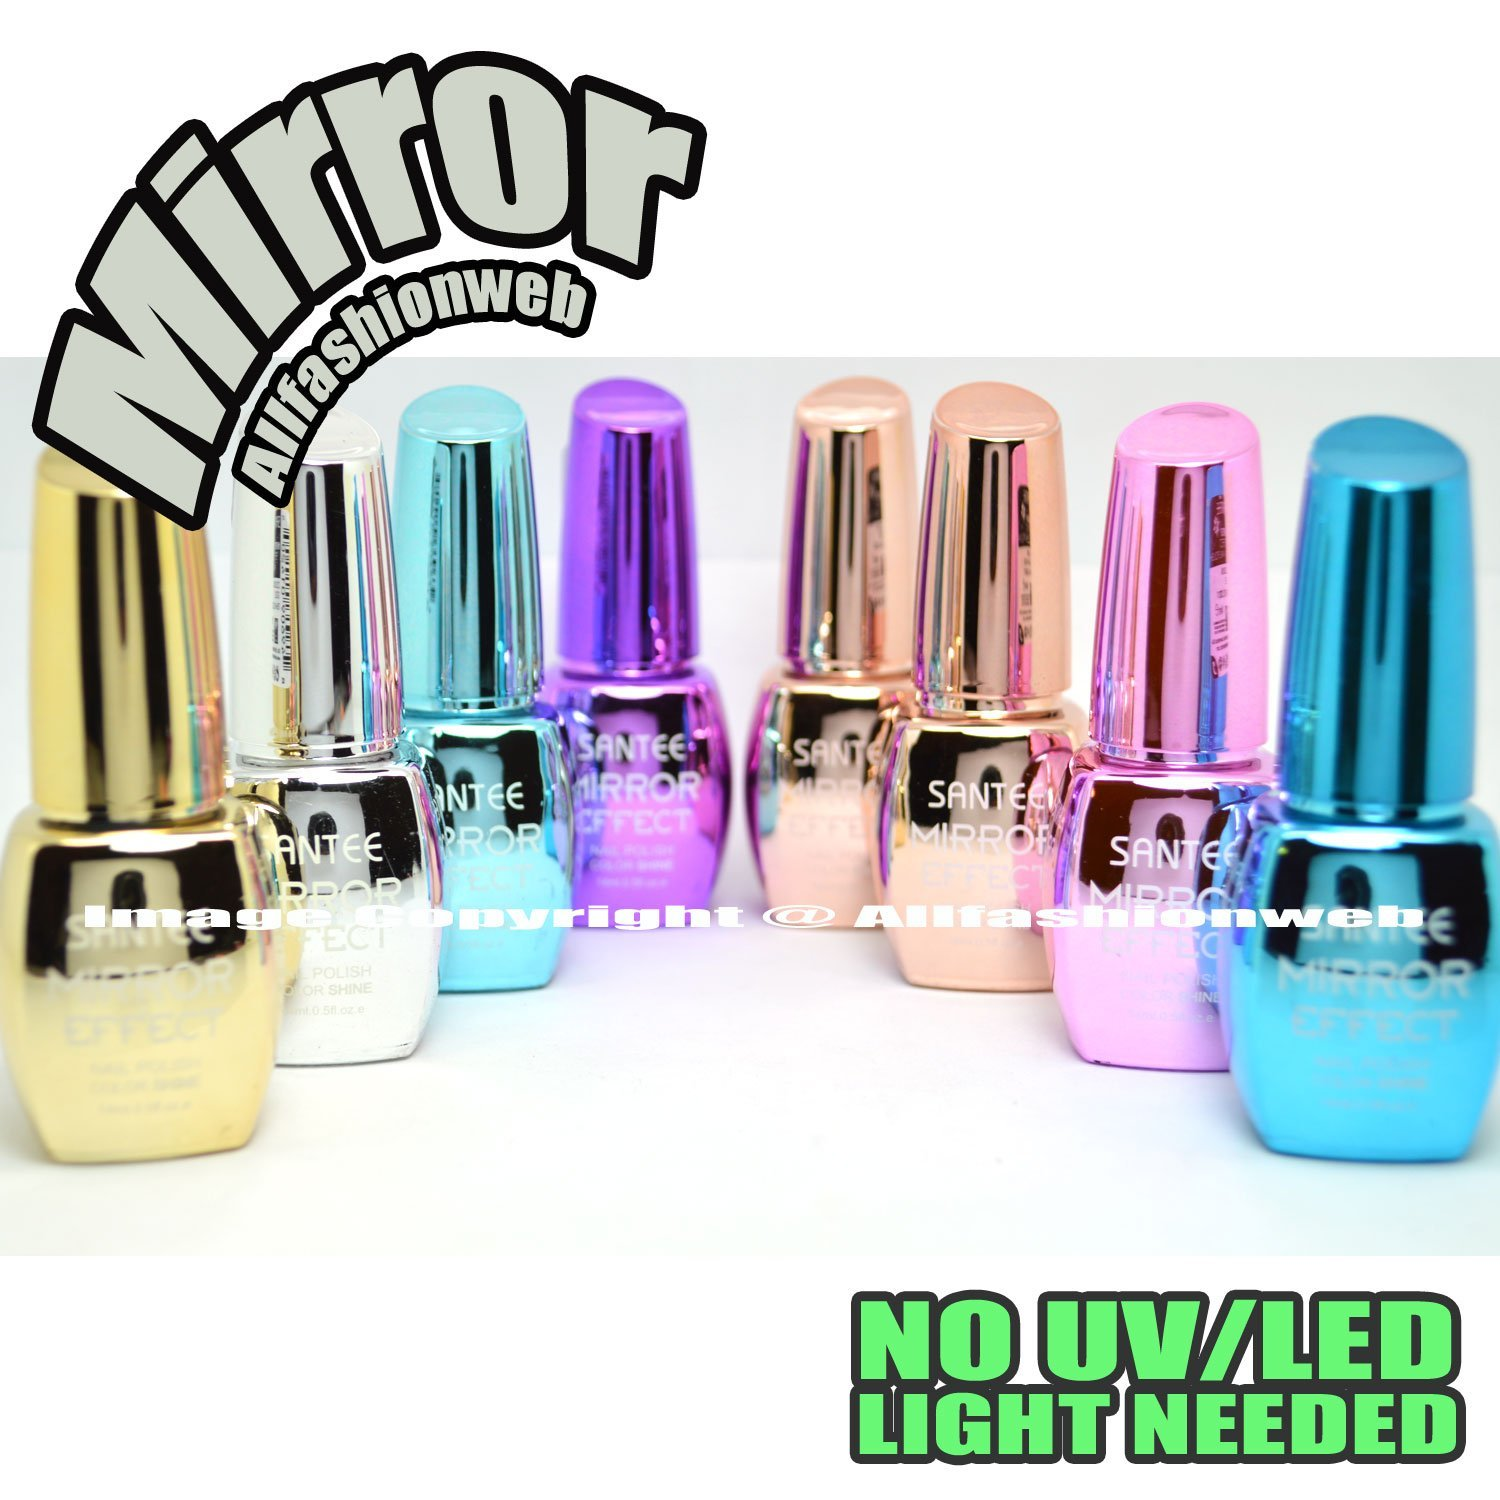 8 Full Color Mirror Effect Chrome Metallic No UV / LED Nail Polish ...